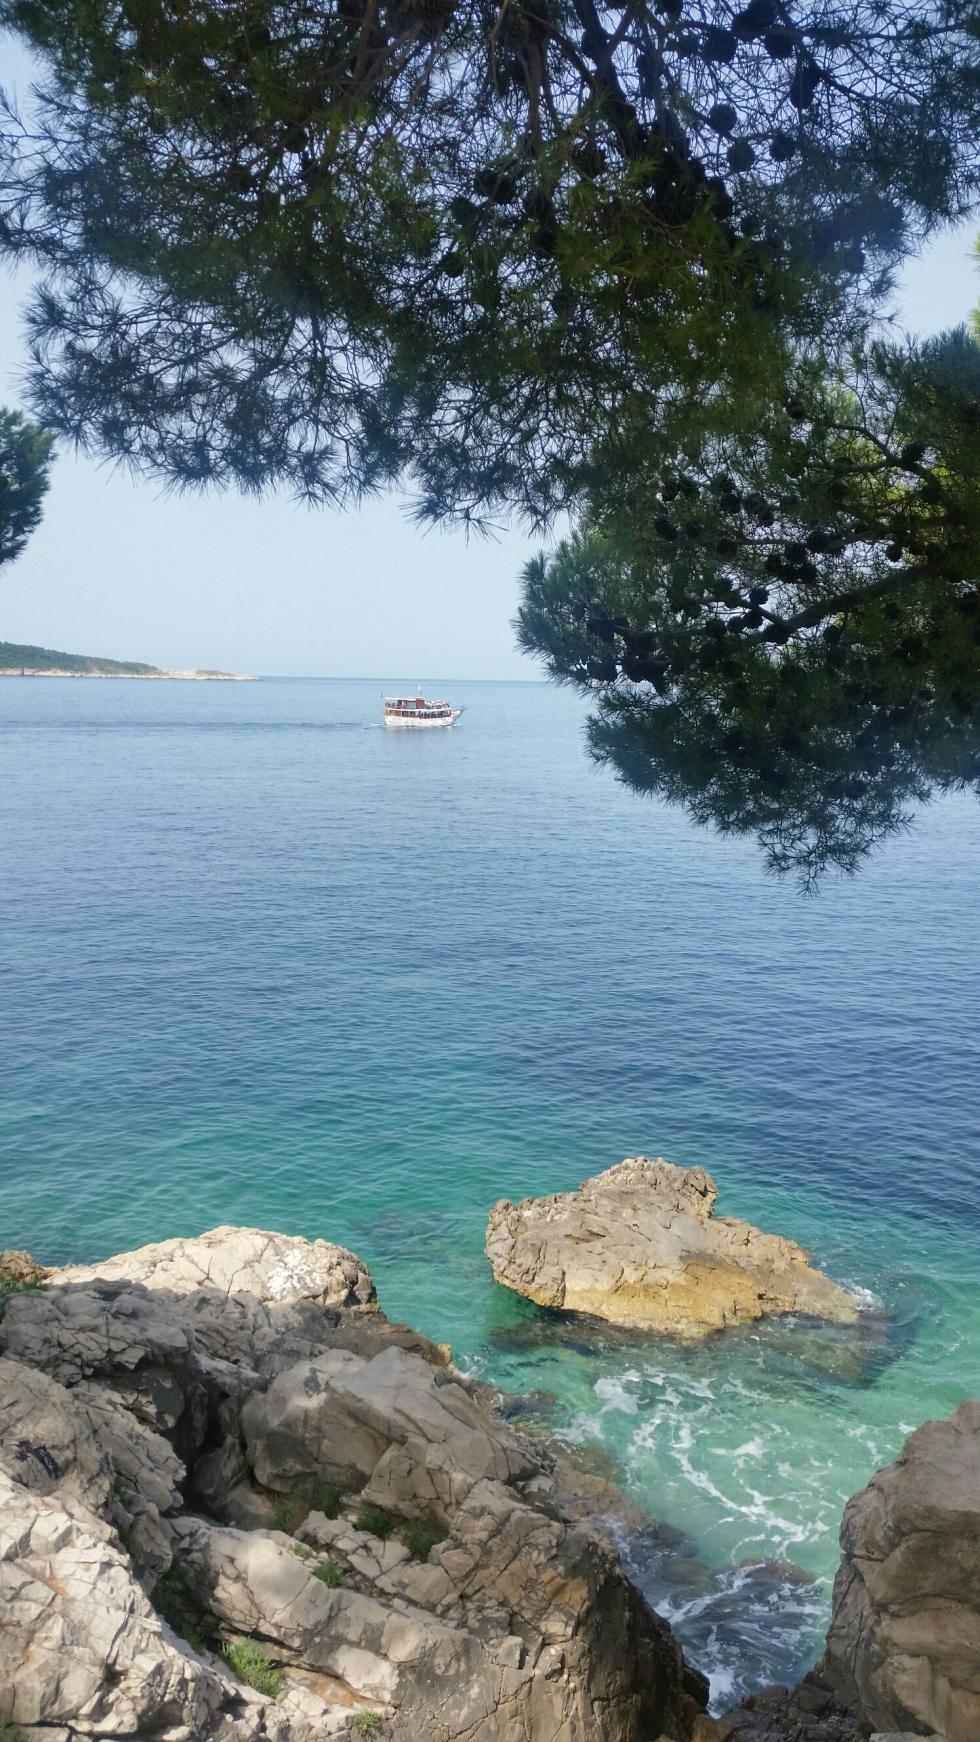 Croatia holiday much of the coastline is framed by pine forests